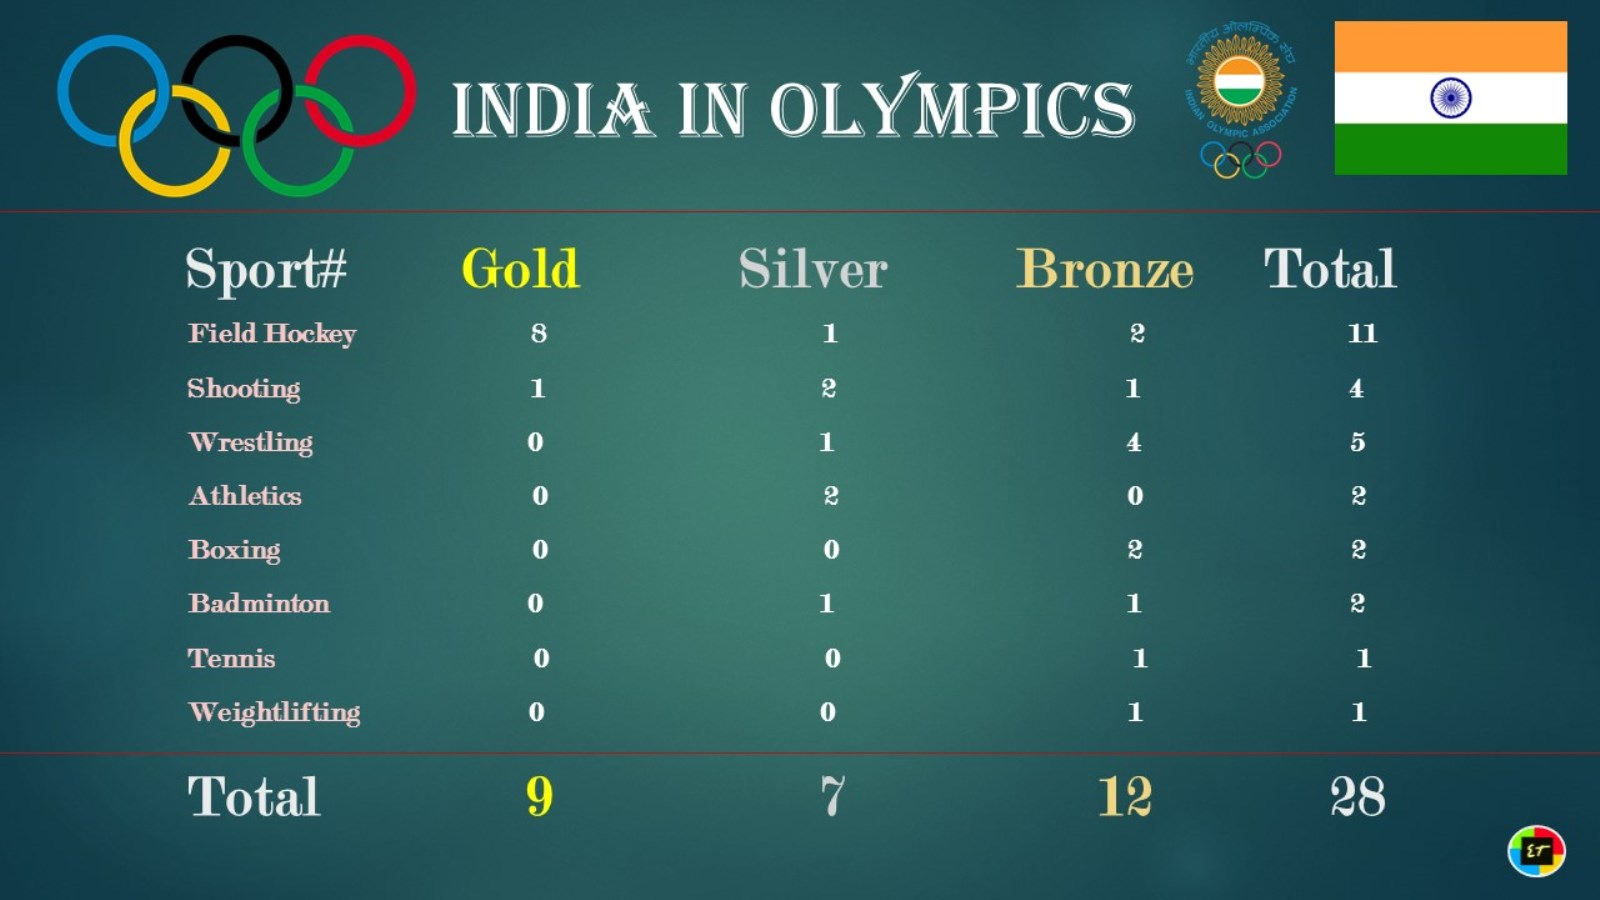 india and olympics Trivia, facts and figures about participants from india at the olympics.